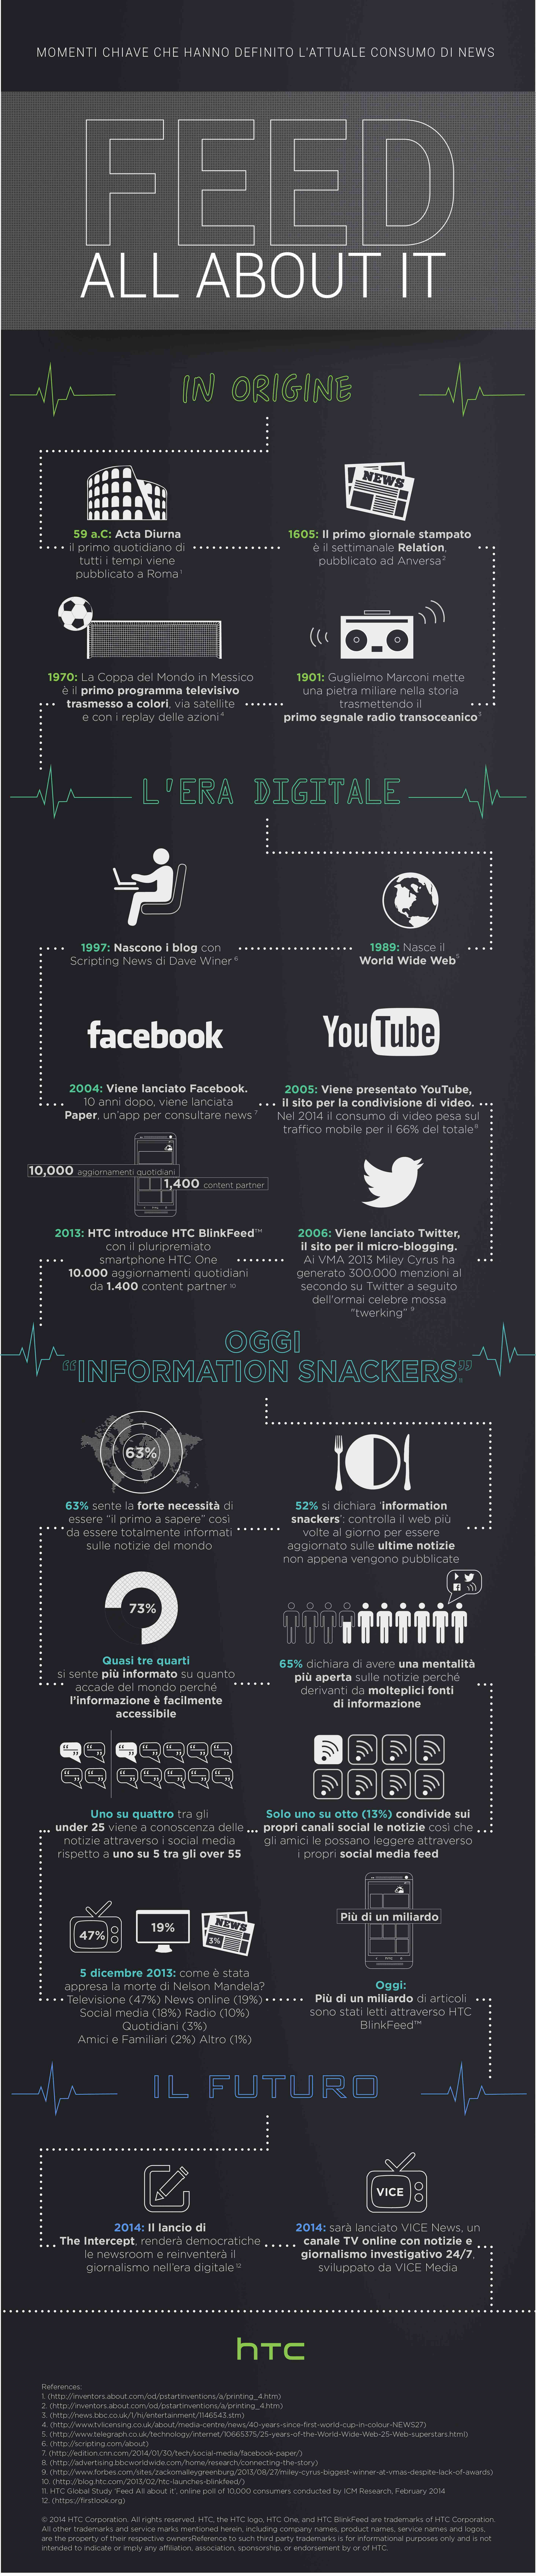 Feed all about it_infographic_rev1